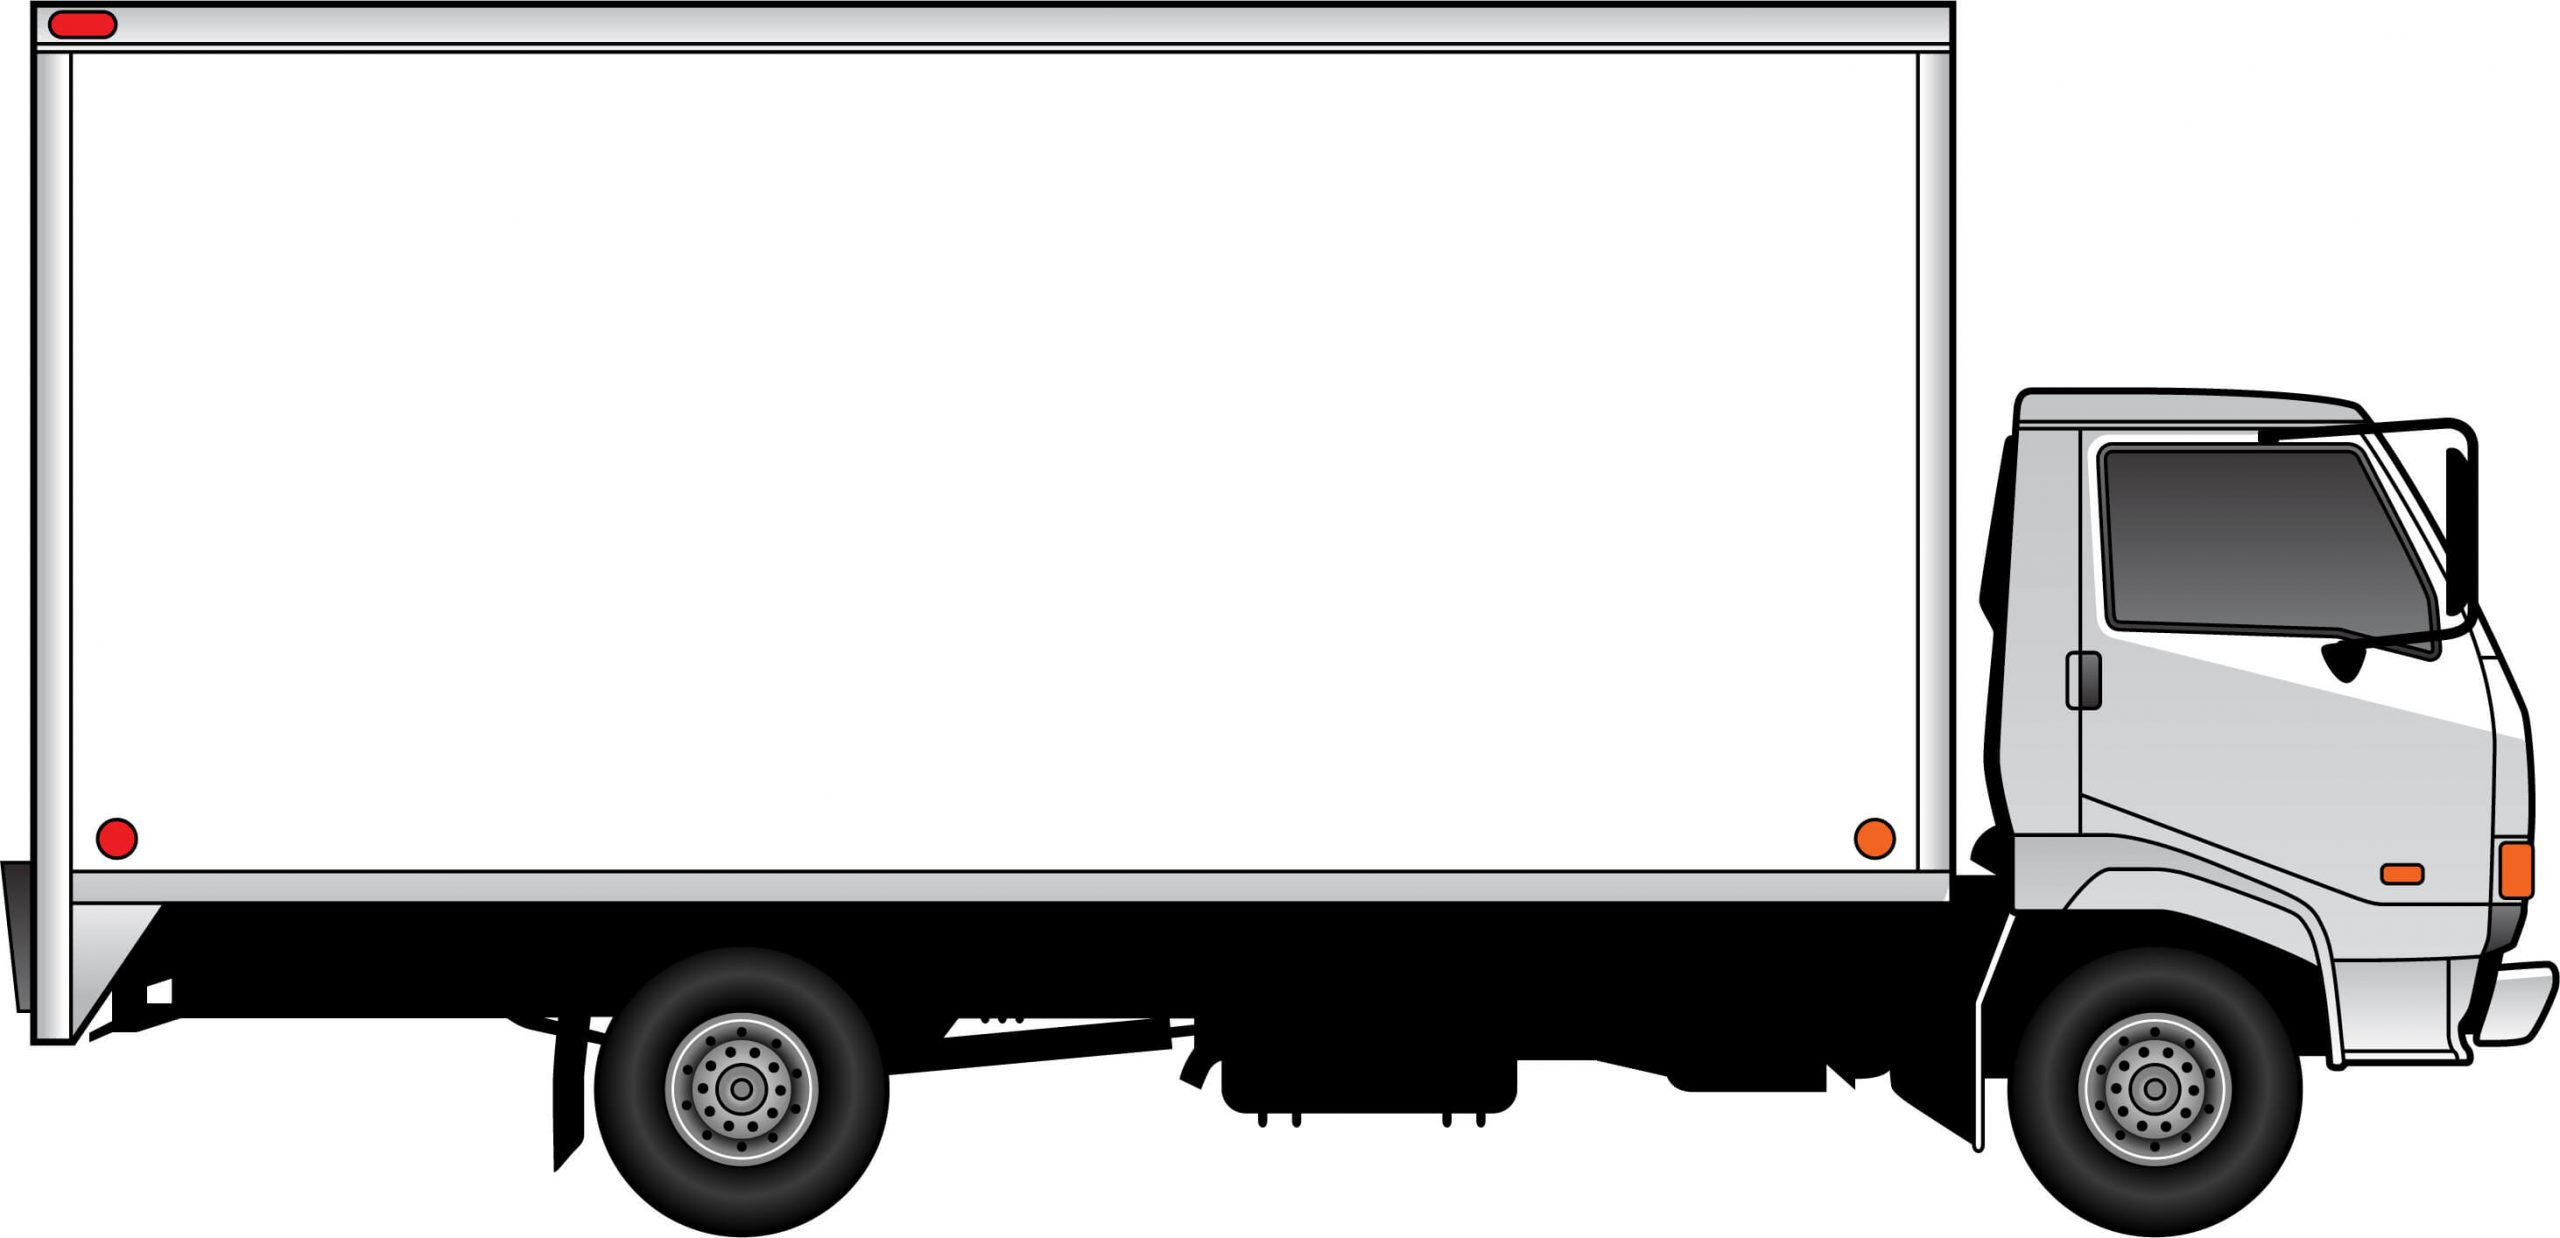 Pantech Truck with Tail Lift